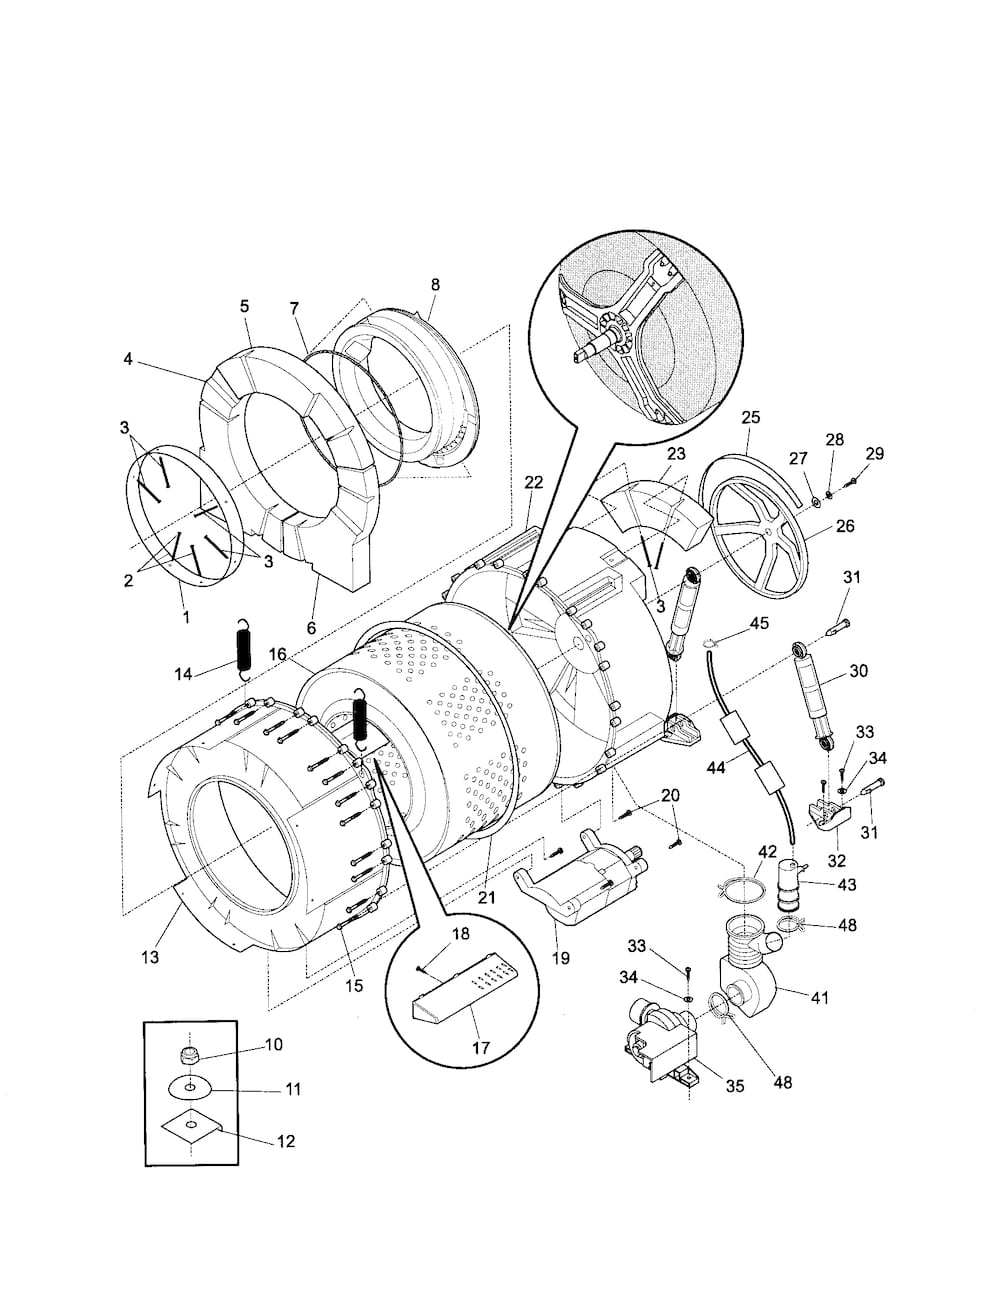 wiring diagram for front load washer auto electrical wiring diagram Toyota Camry related with wiring diagram for front load washer